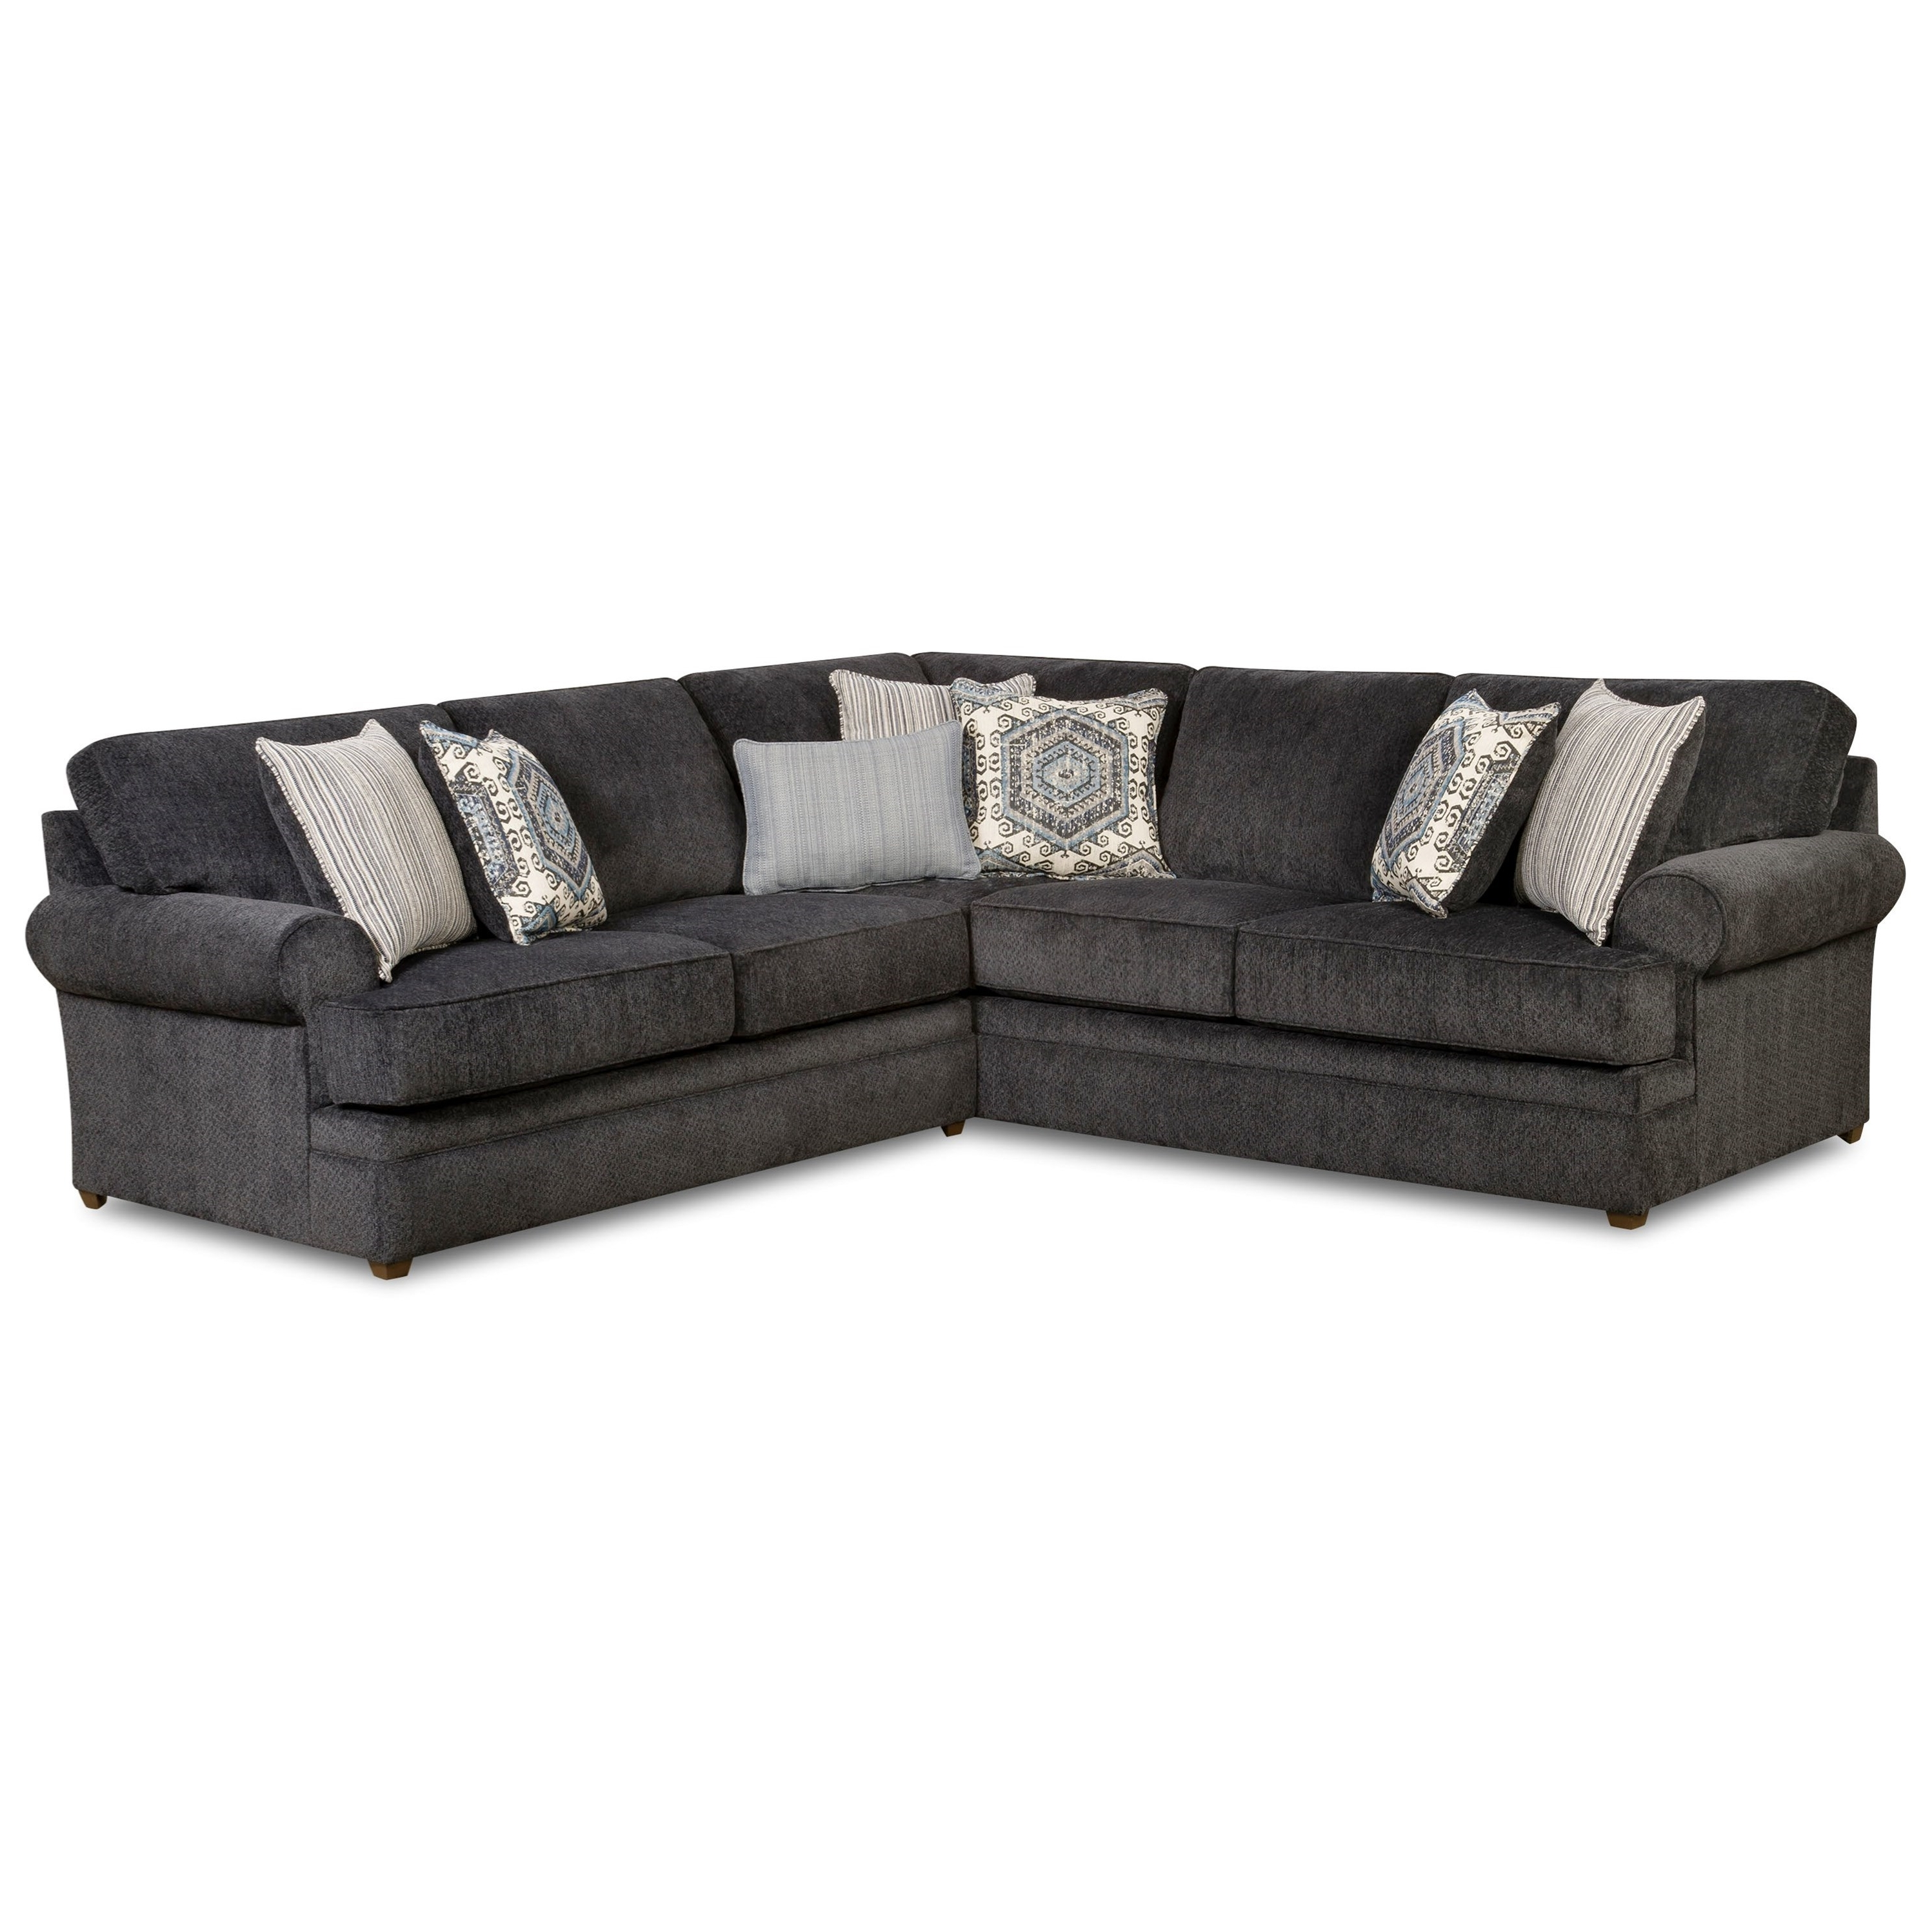 Sectional Sofas At Birmingham Al Regarding Well Liked Simmons Upholstery 8530 Br Transitional Sectional Sofa With Rolled (View 12 of 15)